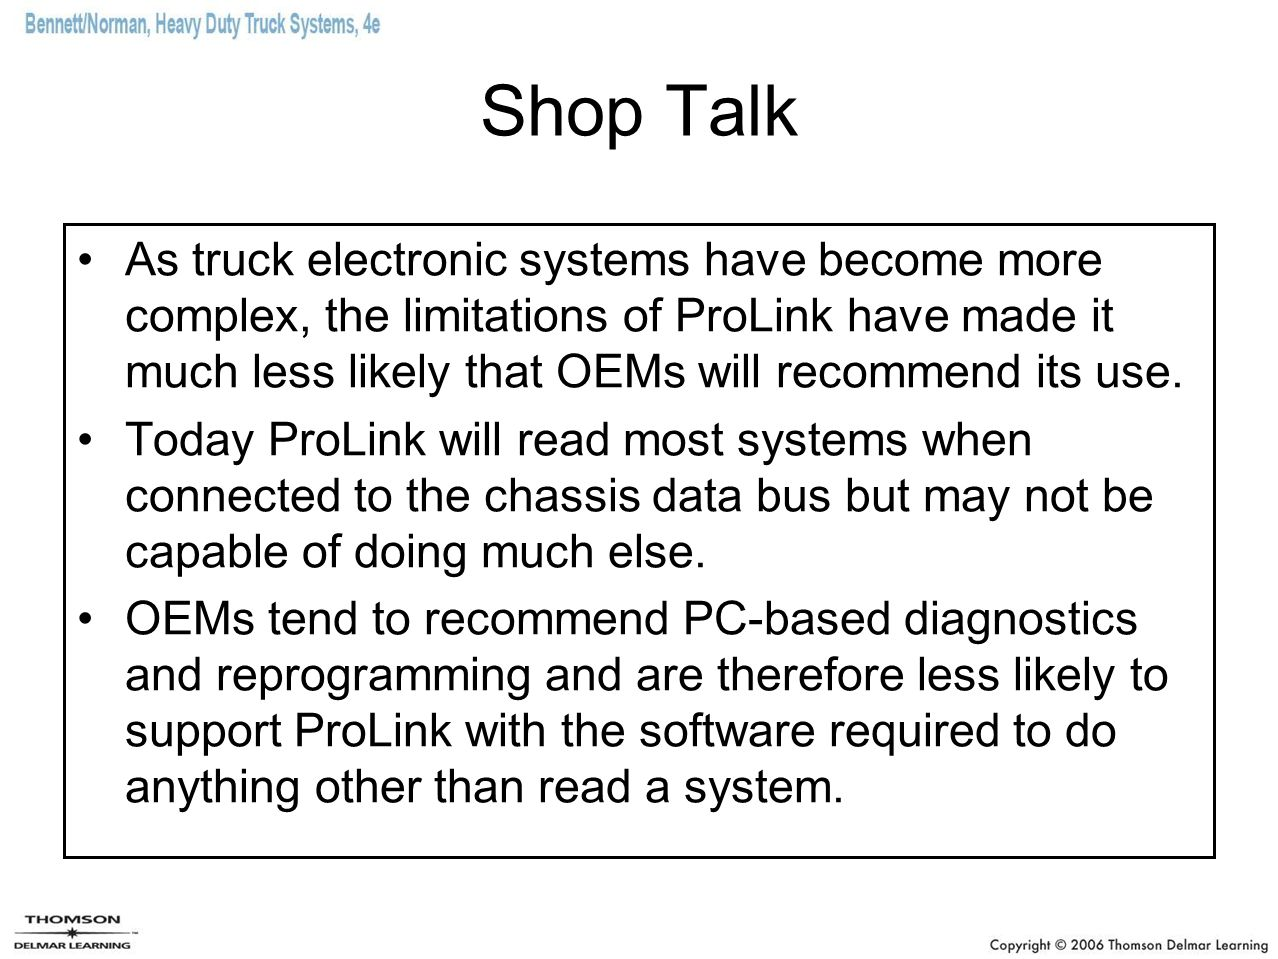 Shop Talk As truck electronic systems have become more complex, the limitations of ProLink have made it much less likely that OEMs will recommend its